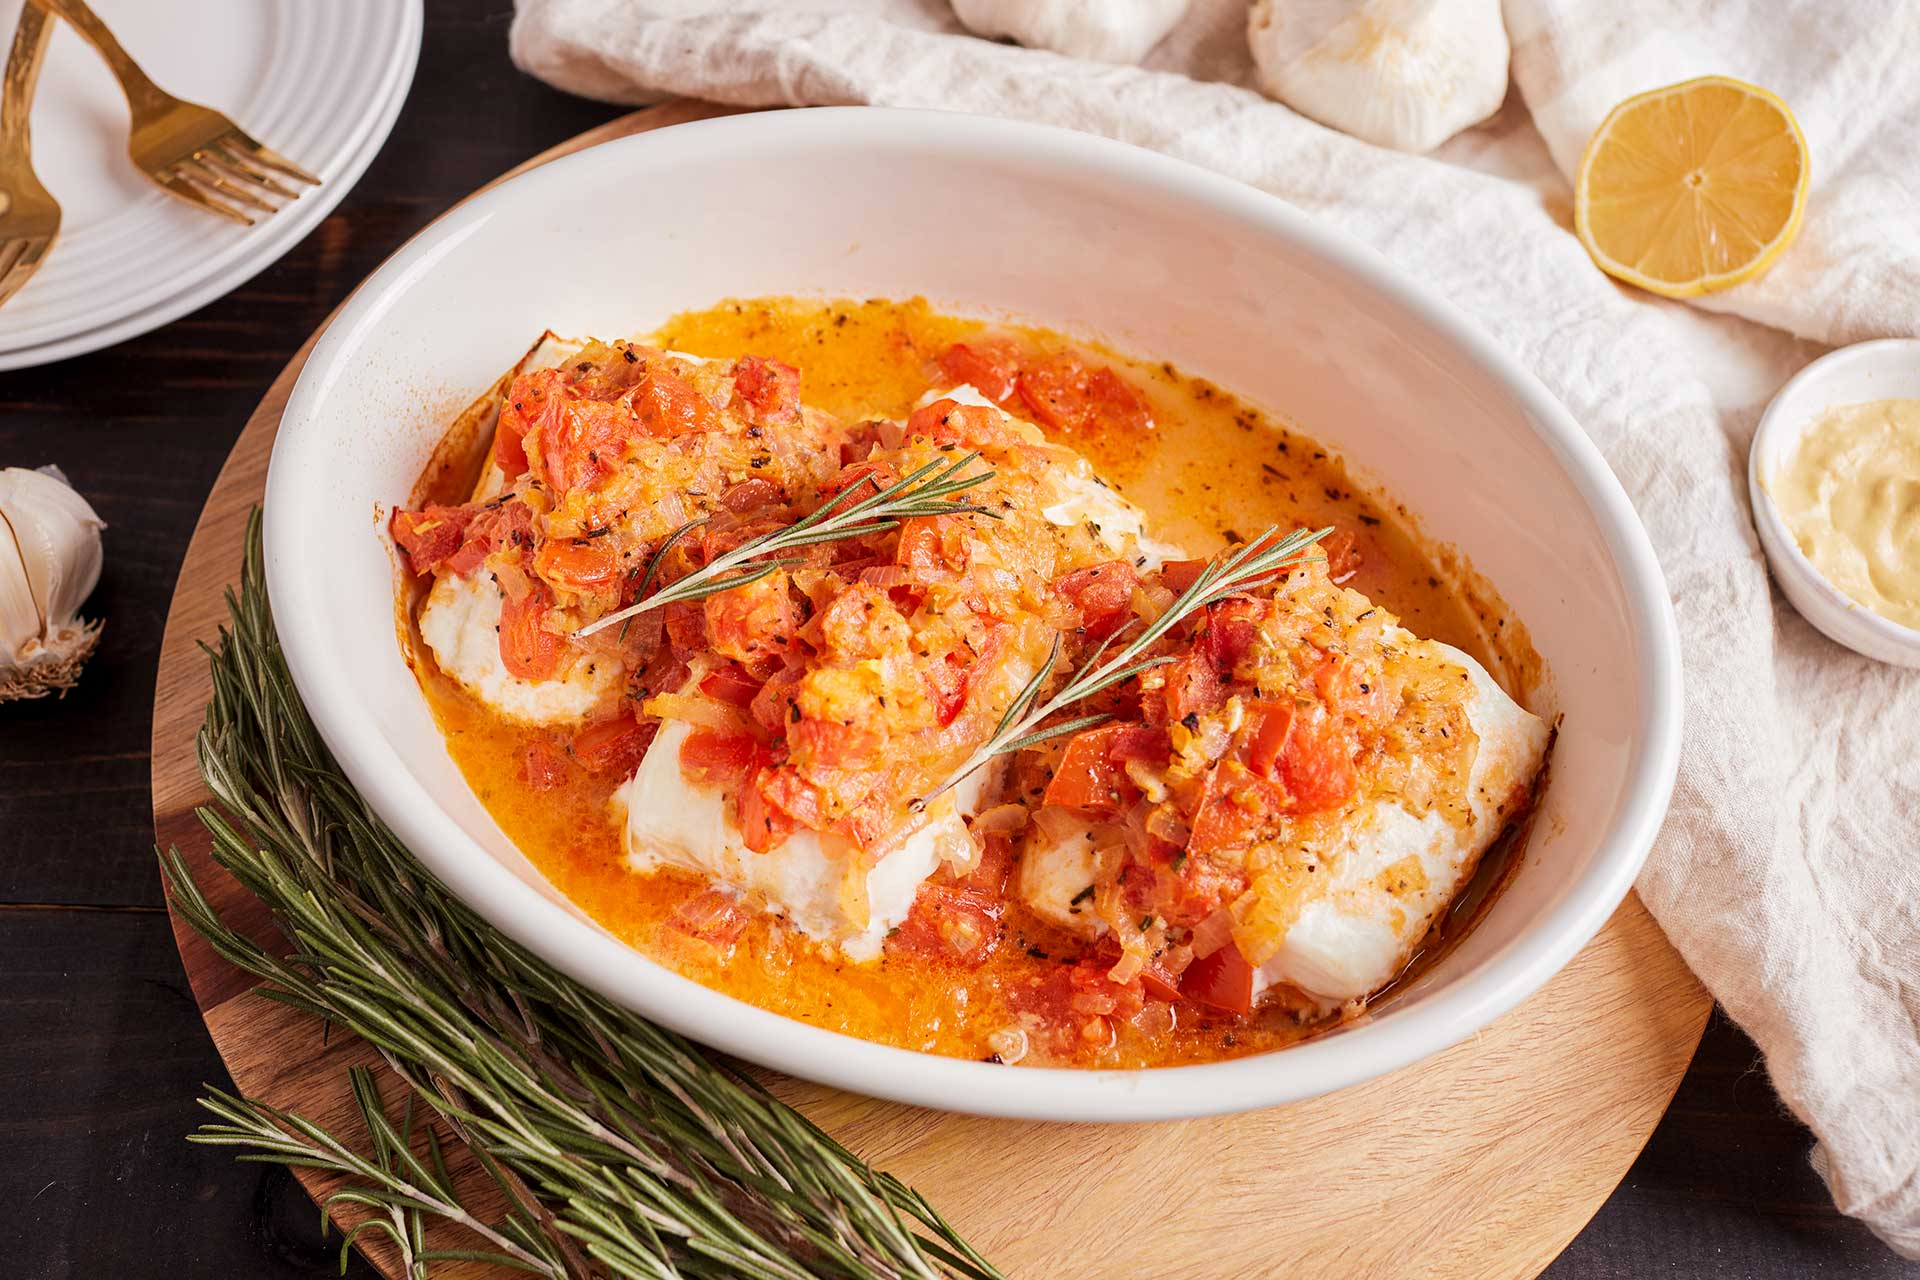 Baked Halibut with Lemon and Rosemary (Greece)